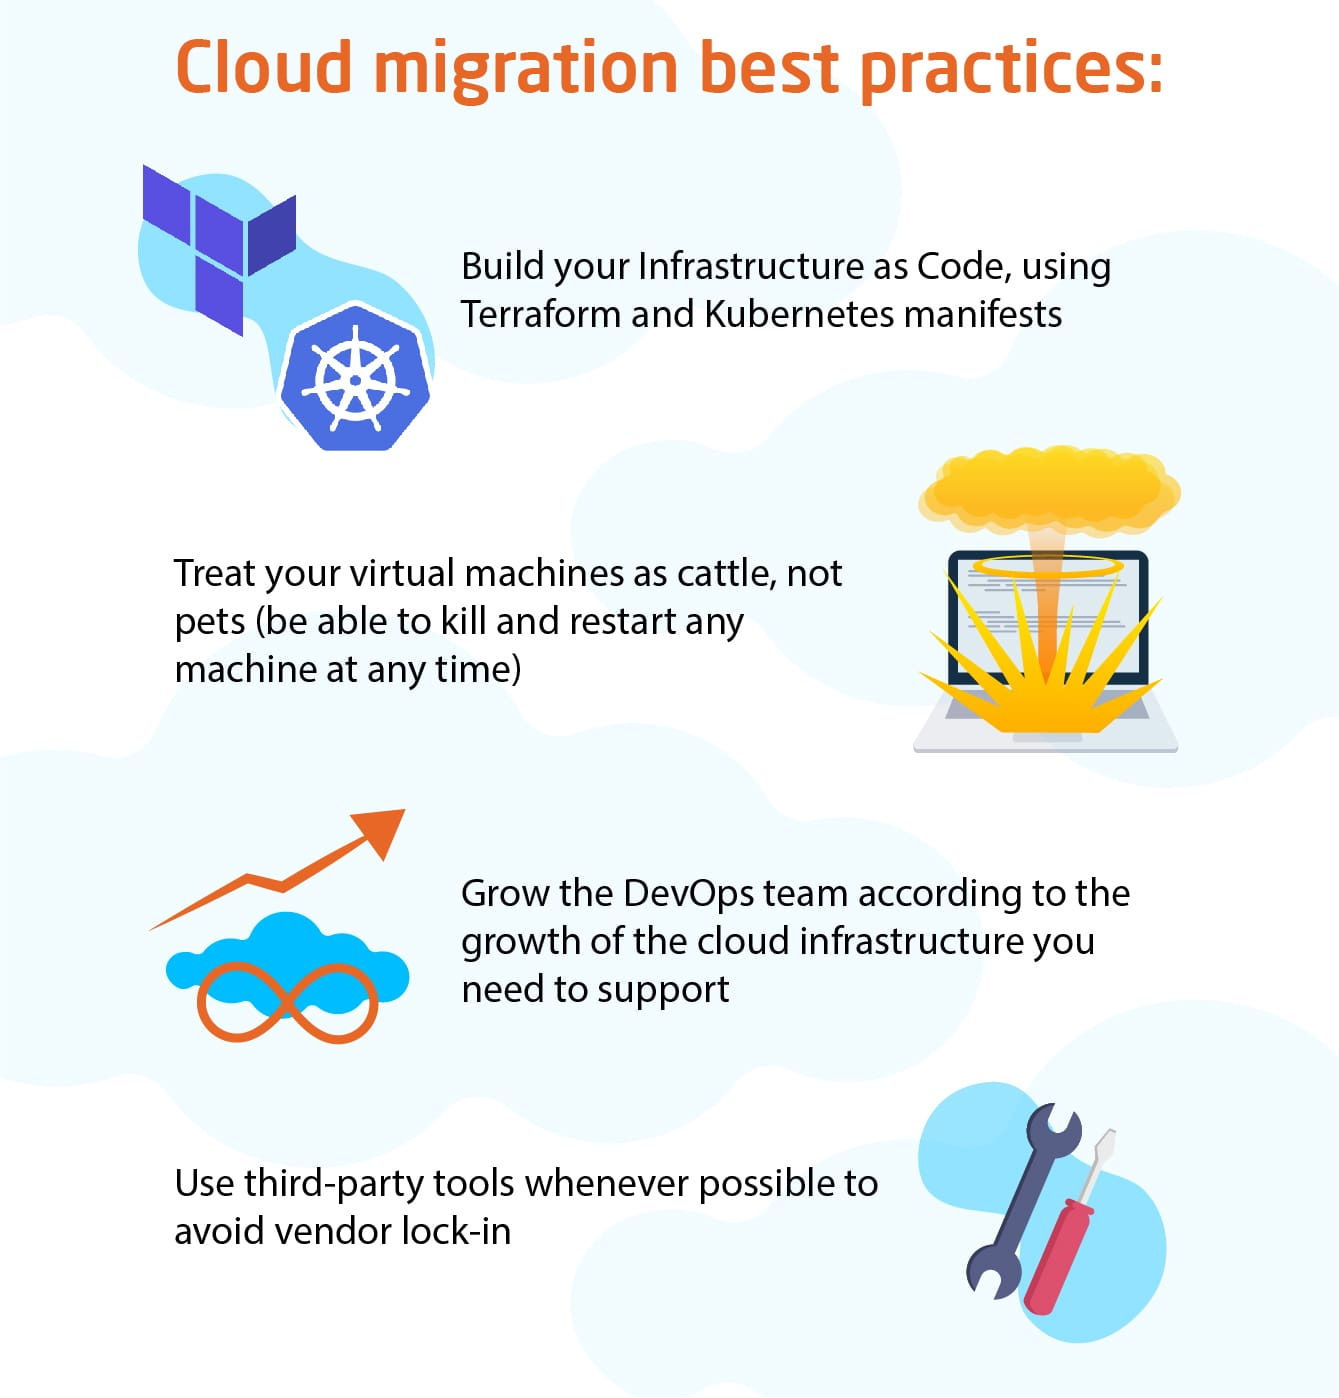 IT Svit Blog: Cloud Migration Best Practices - rules